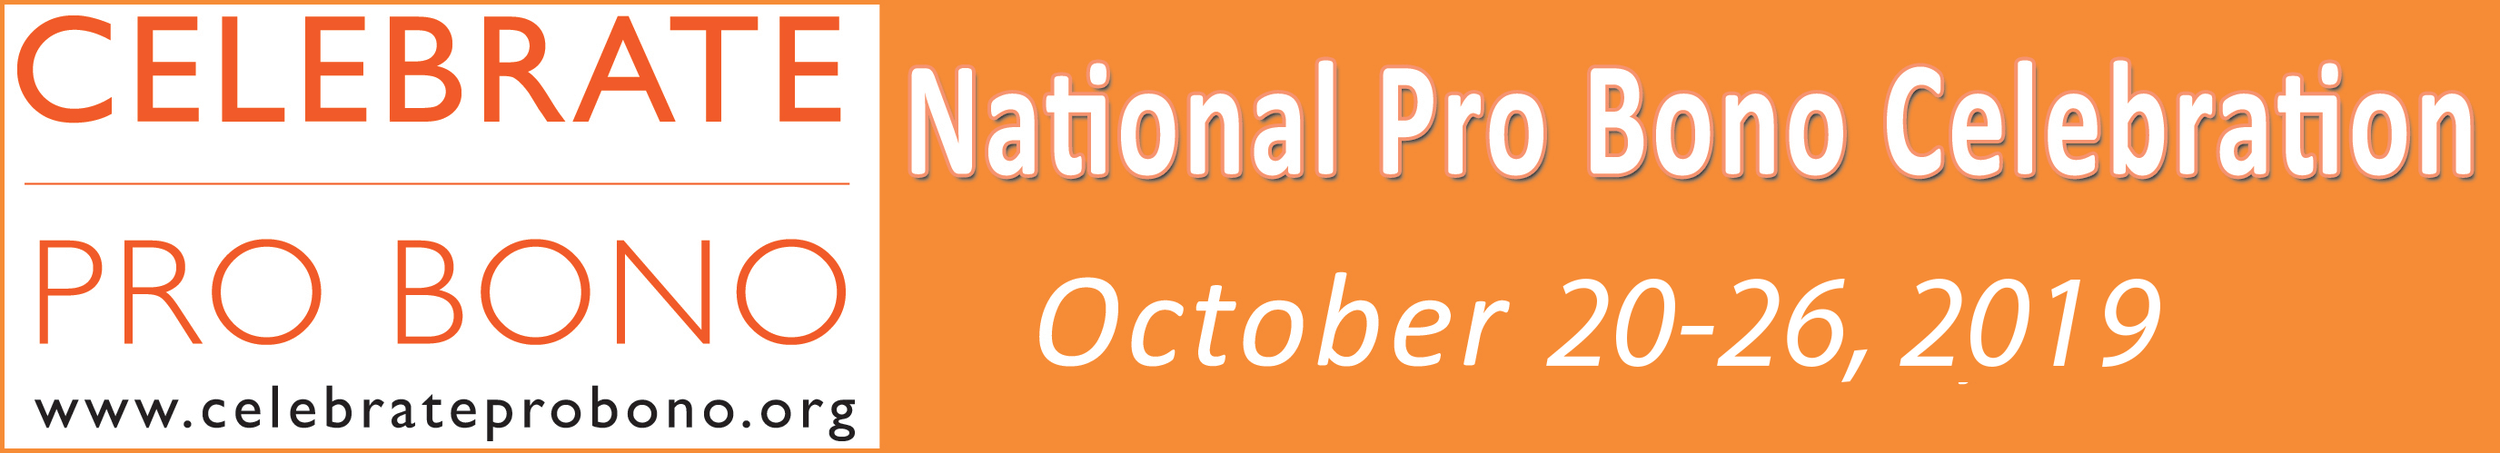 Celebrate Pro Bono Week 2019 is October 20-26, 2019